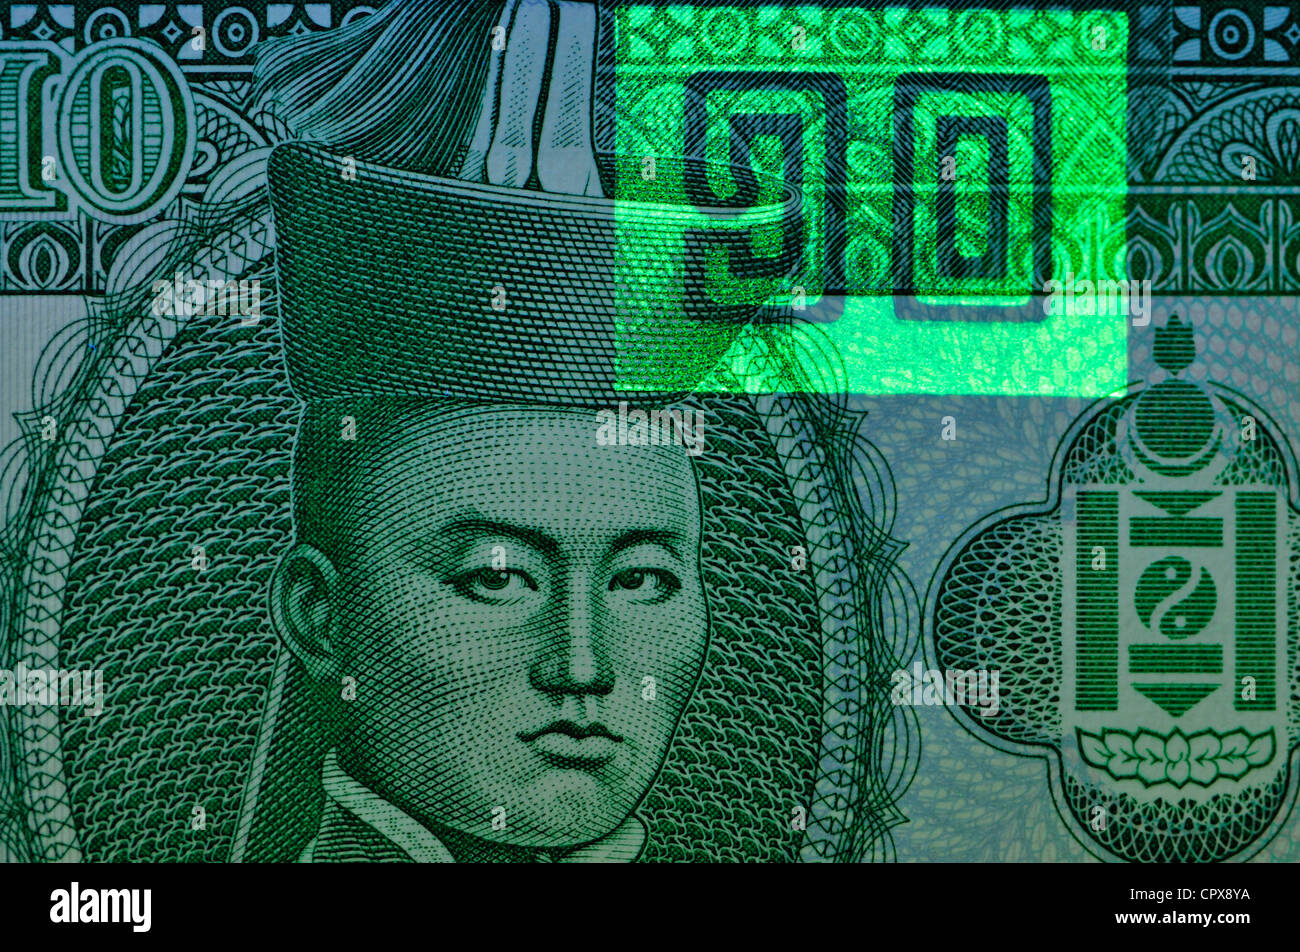 Banknote security features seen under ultraviolet light. Mongolian banknote - Stock Image